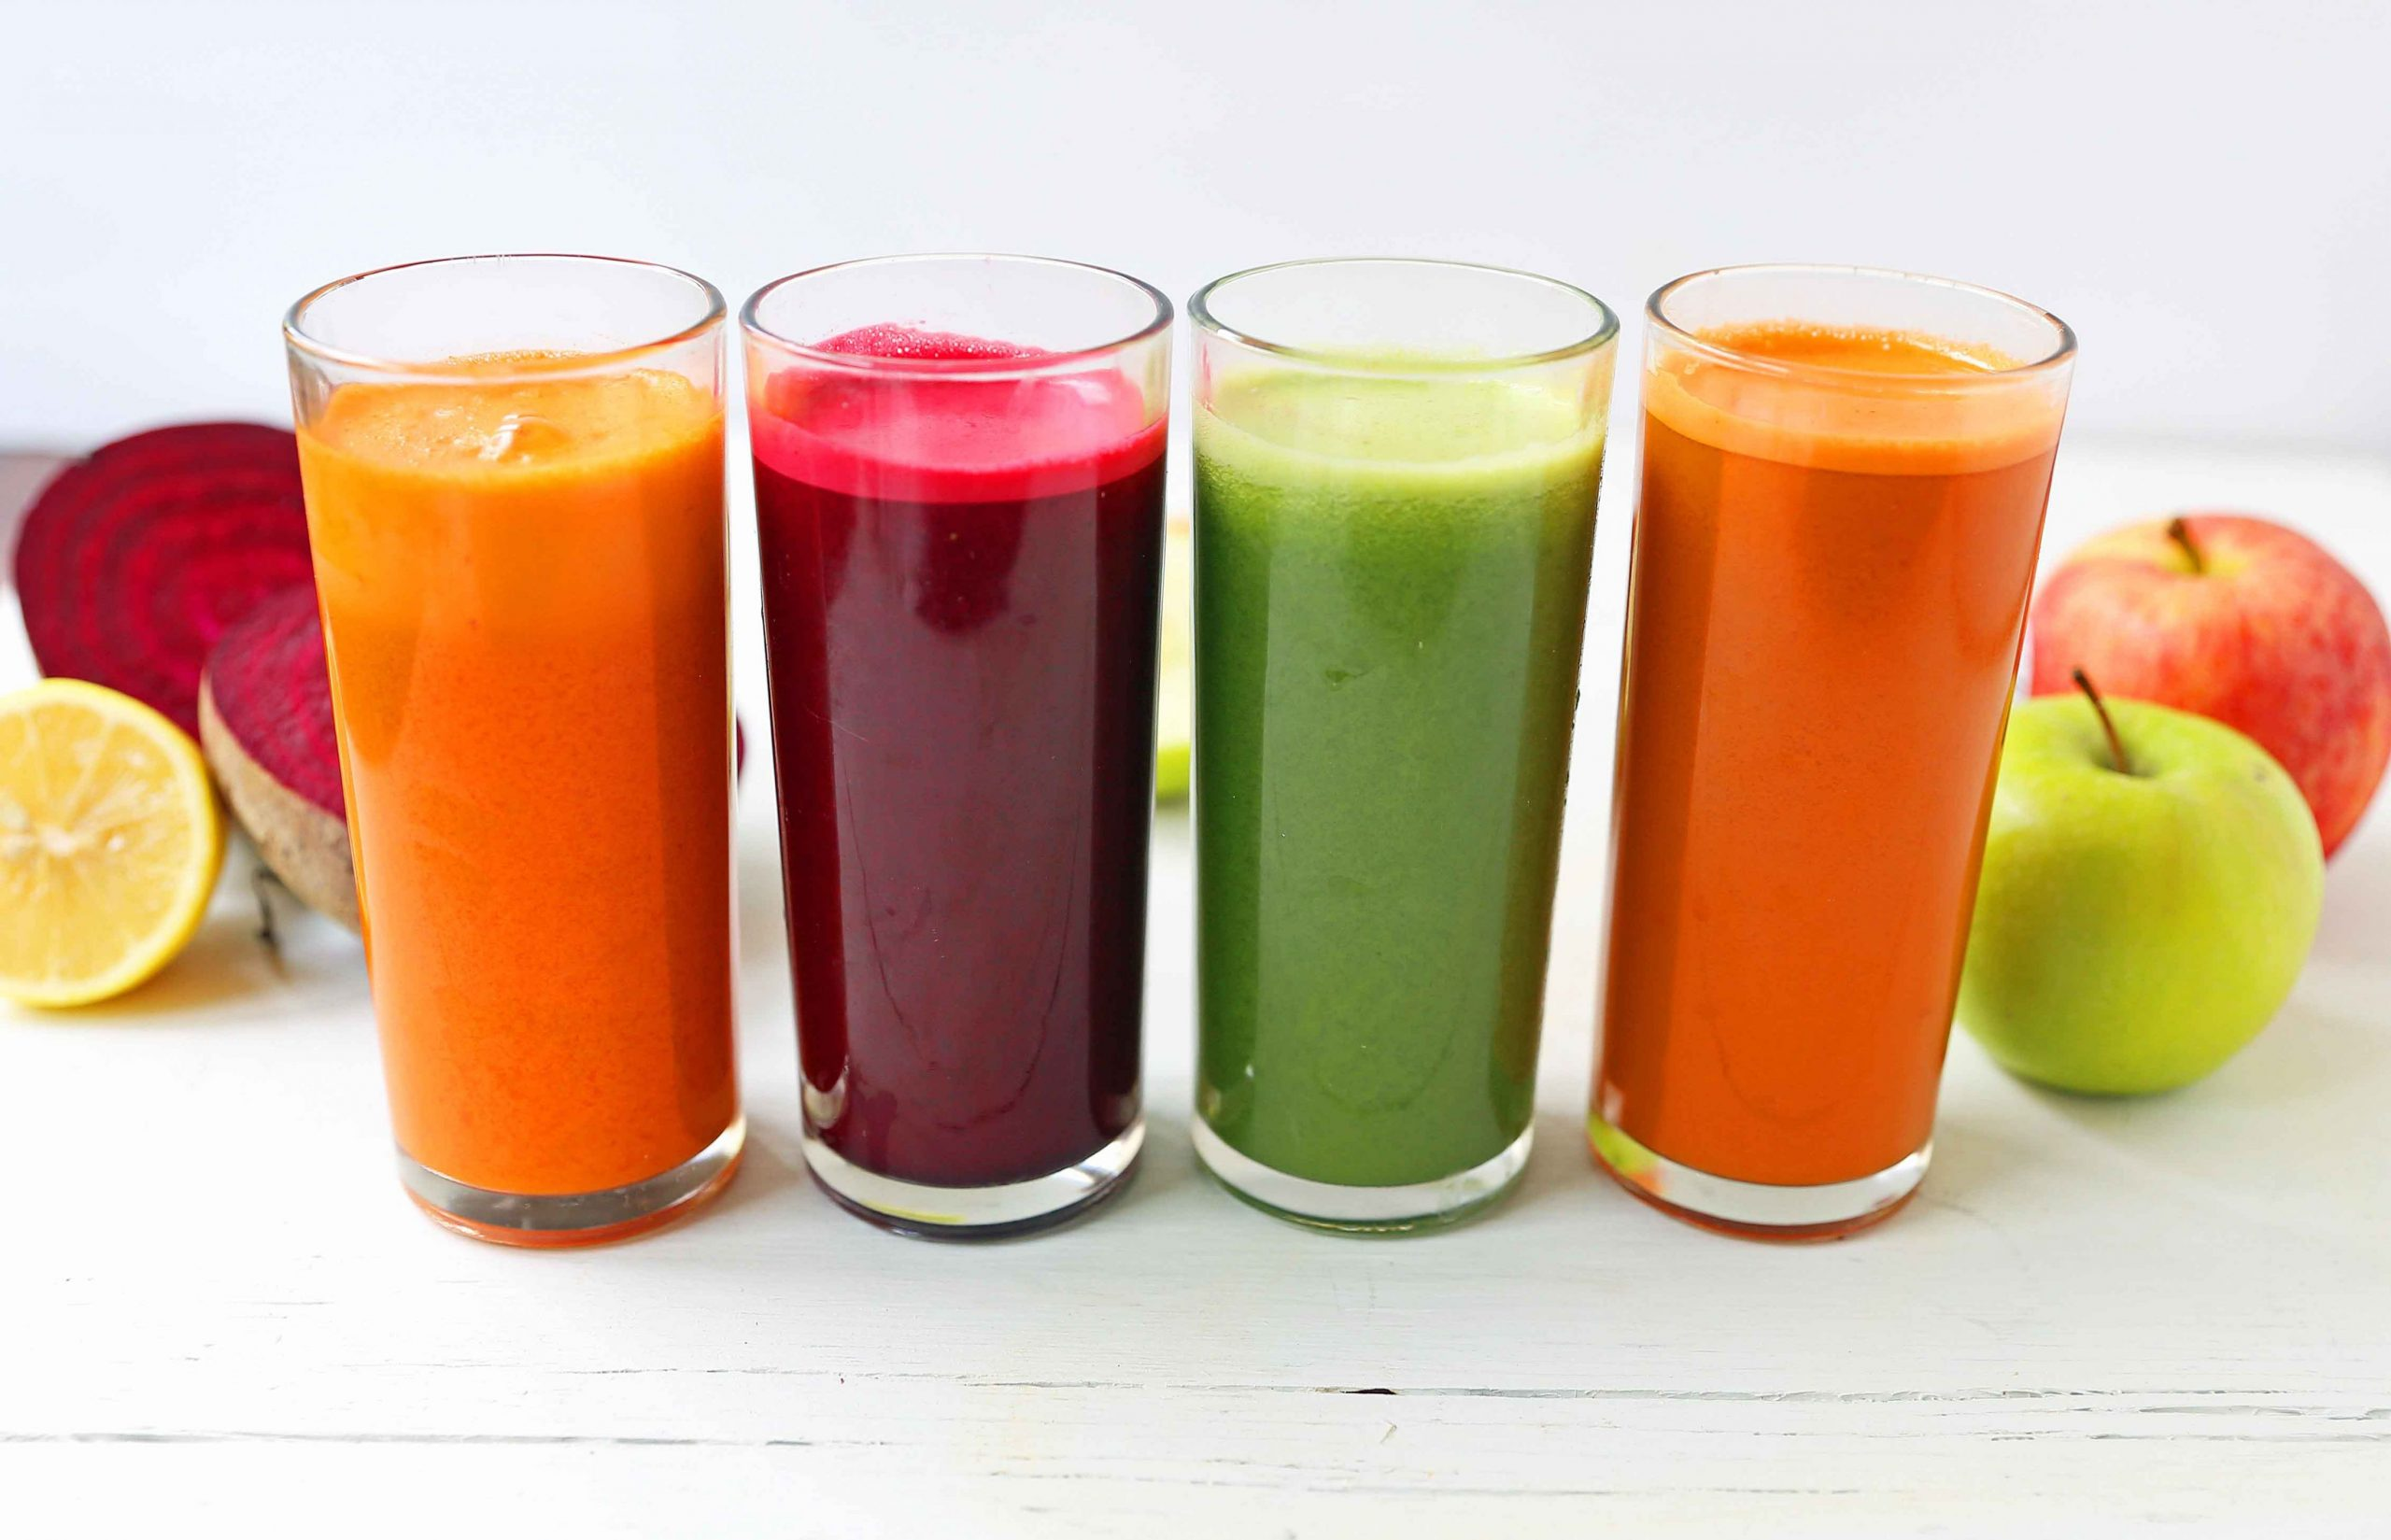 Healthy Juice Cleanse Recipes - Dinner Recipes Juice Cleanse